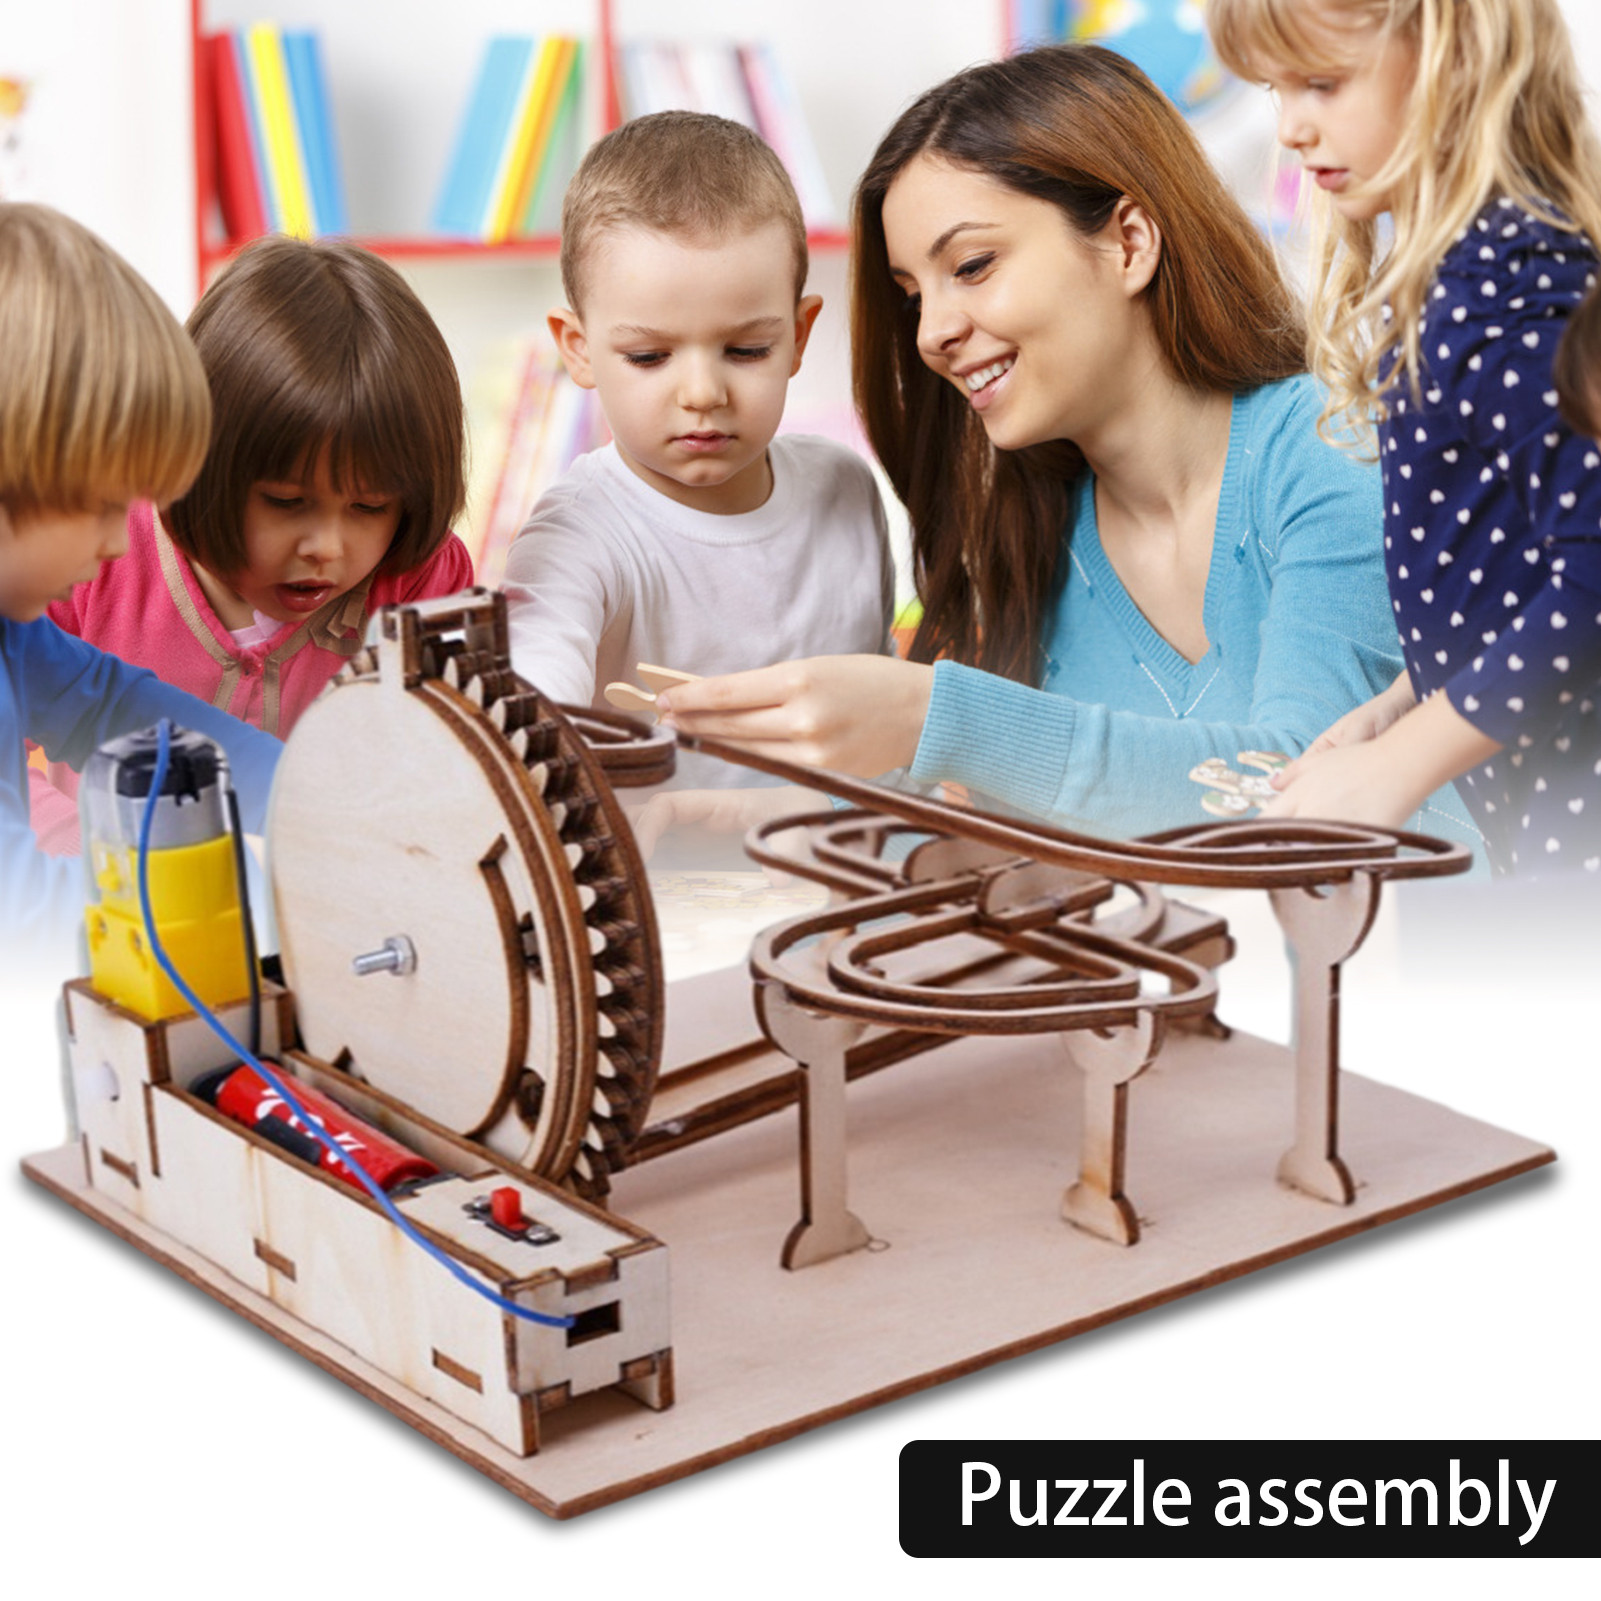 Wooden Marble Run Model Kit 3D Mechanical Puzzles For Kids Adults DIY Toys And Play House Toys